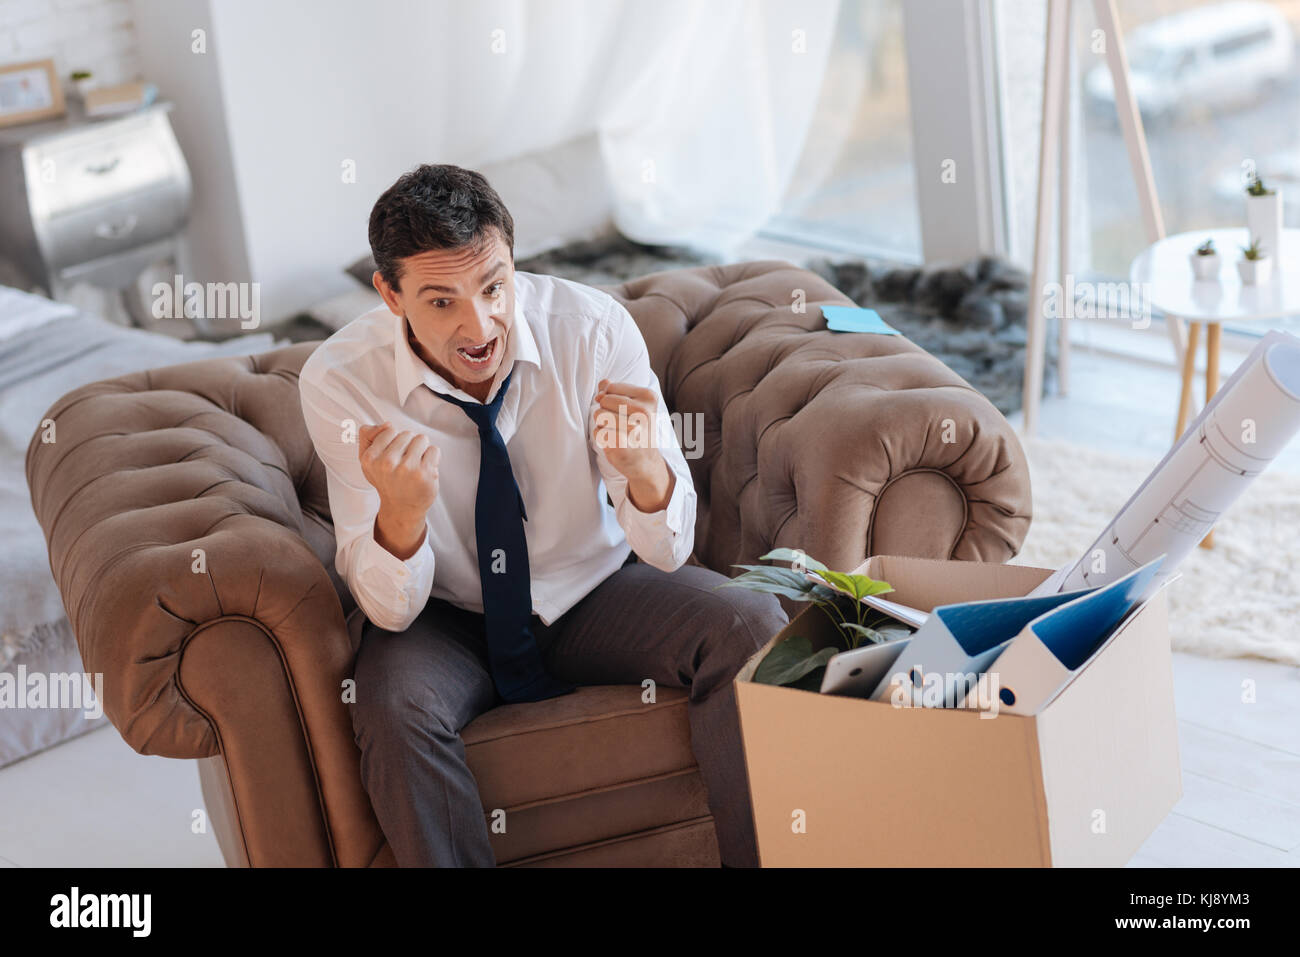 Emotional man clenching his fists while screaming loudly - Stock Image